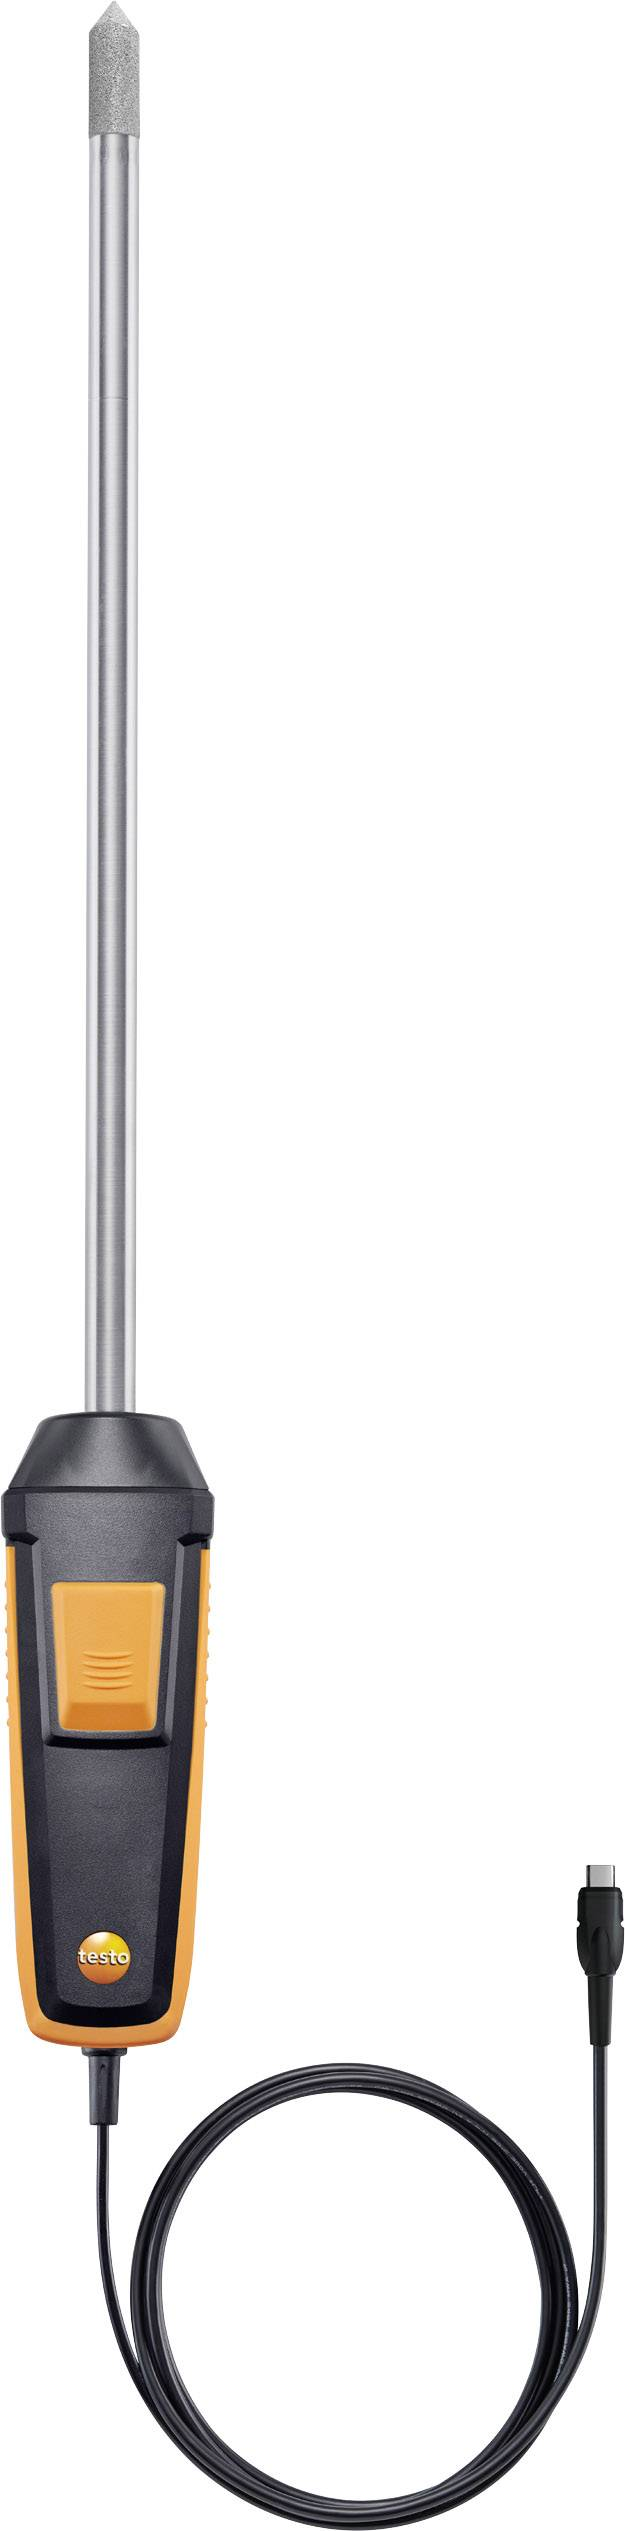 Robust Humidity and Temperature Probe (Digital)